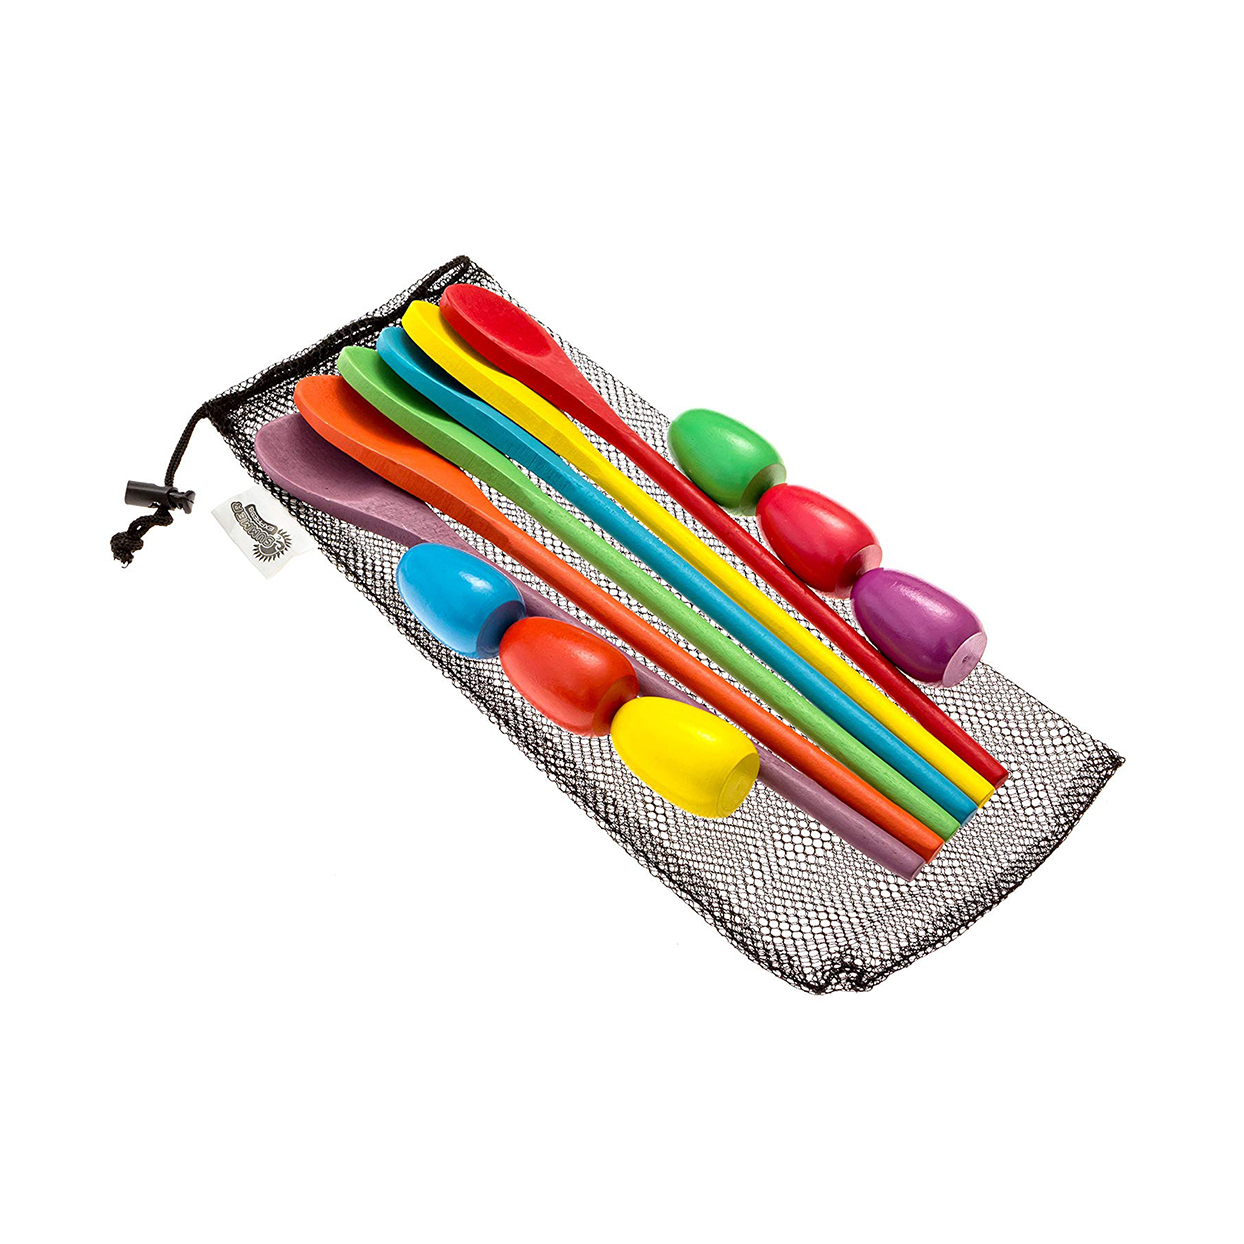 Egg and Spoon Relay Race Game Set